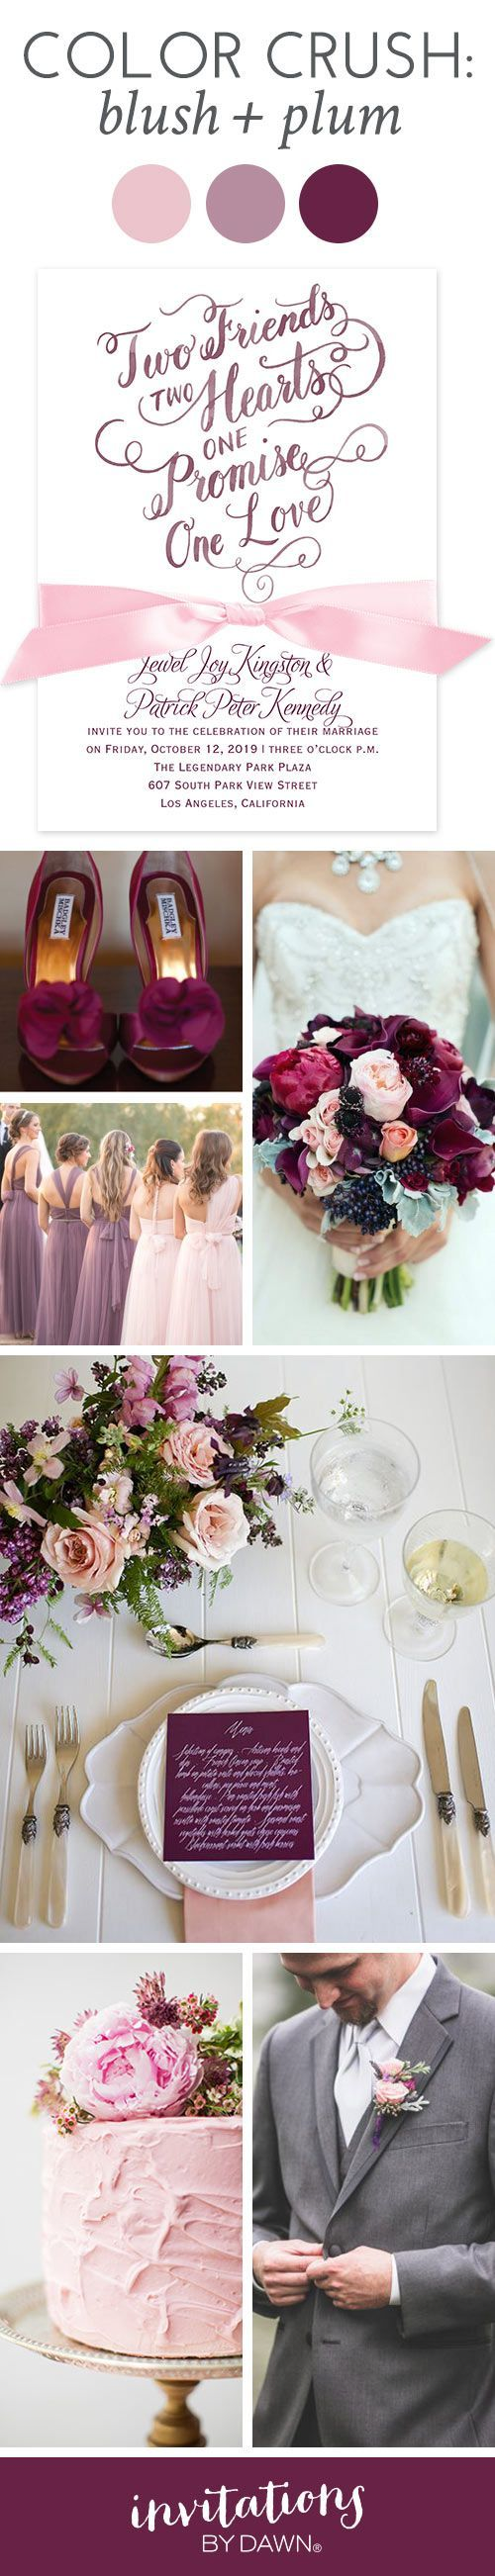 Wedding Color Crush: Blush and Plum I The contrast between blush and plum is so pretty, it's nearly impossible not be swept away by this romantic wedding color combo. See how well these two colors complement each other, and use these ideas to inspire a few of your own.